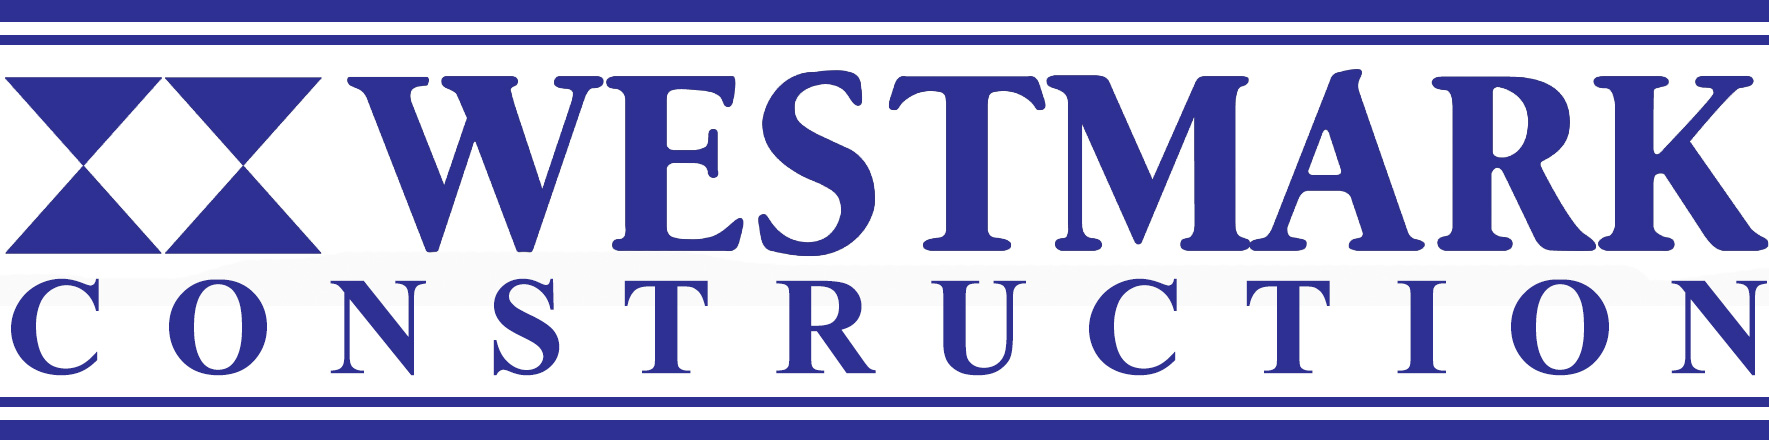 Westmark Construction Company - North Carolina